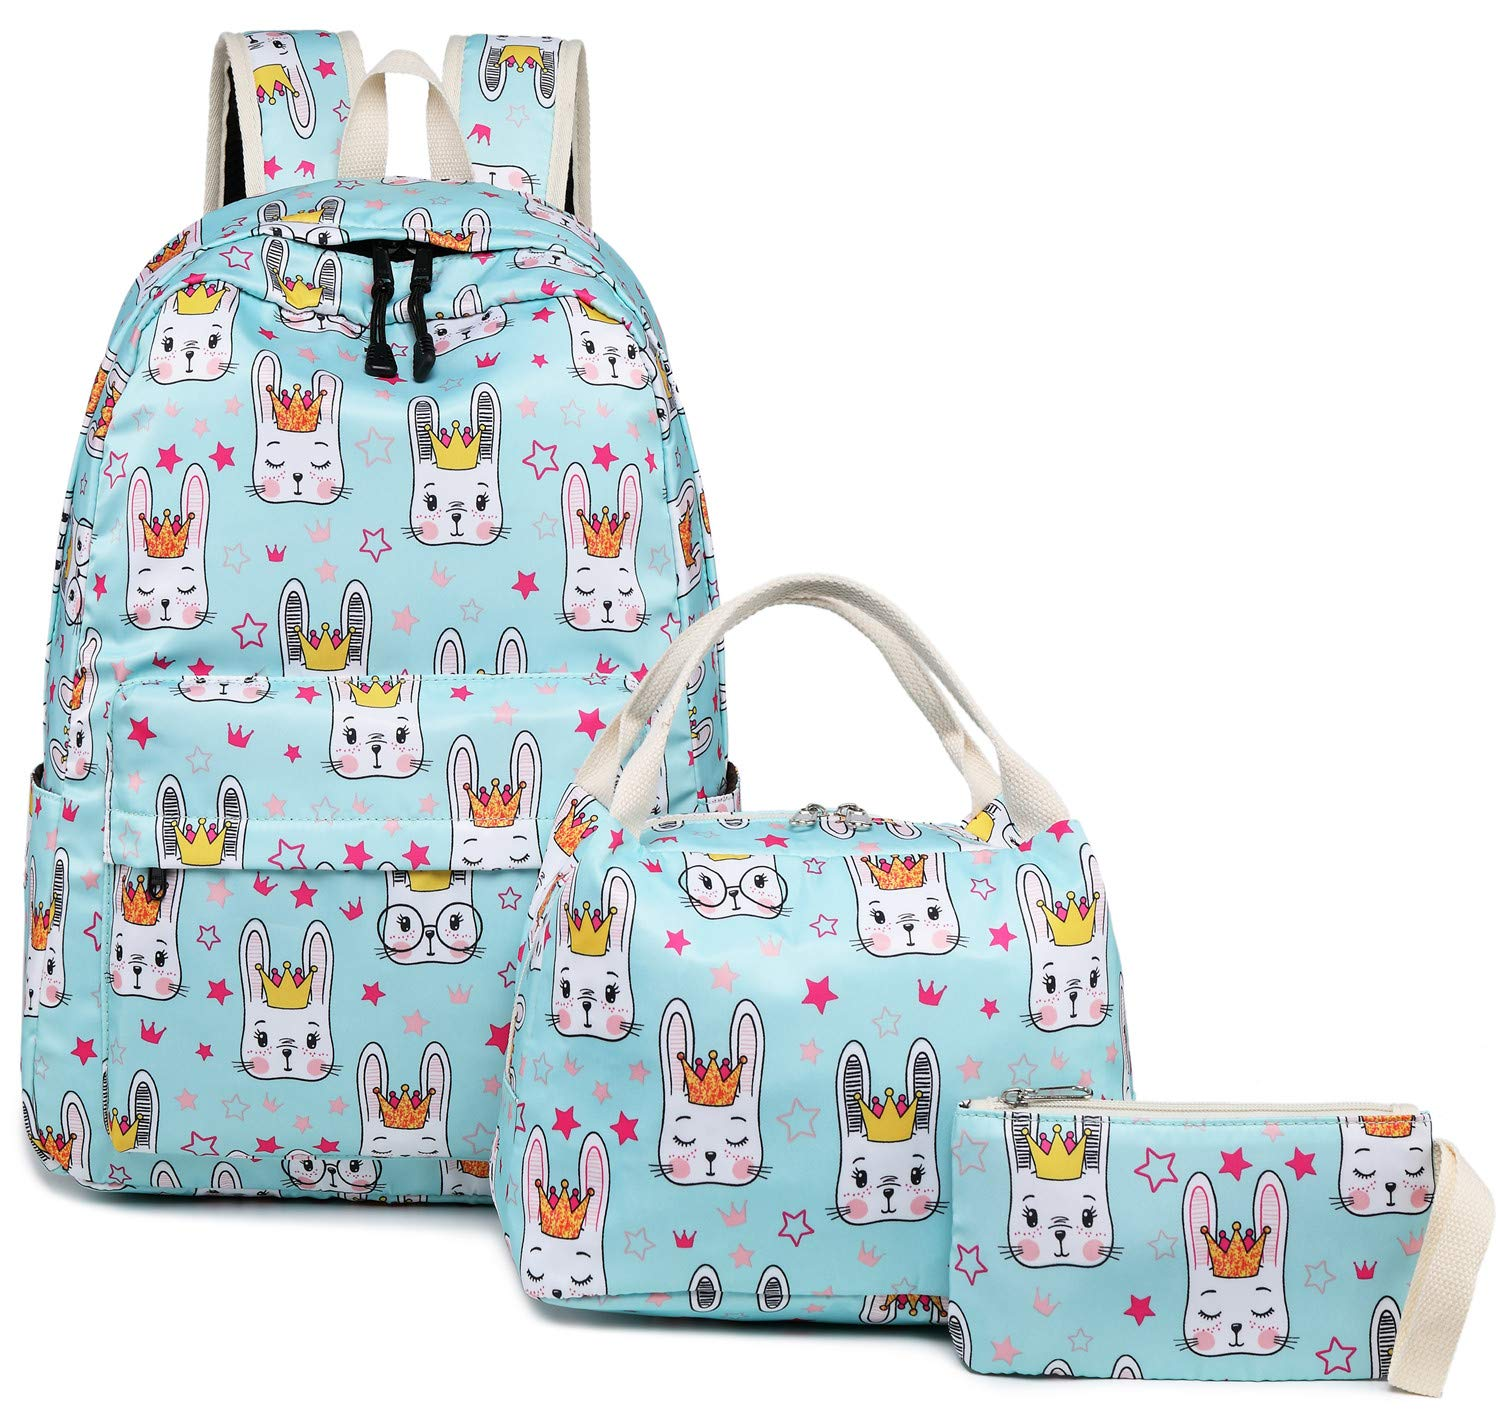 004779d8f6bf Galleon - Backpack For School Girls Teens Bookbag Set School Bag 15